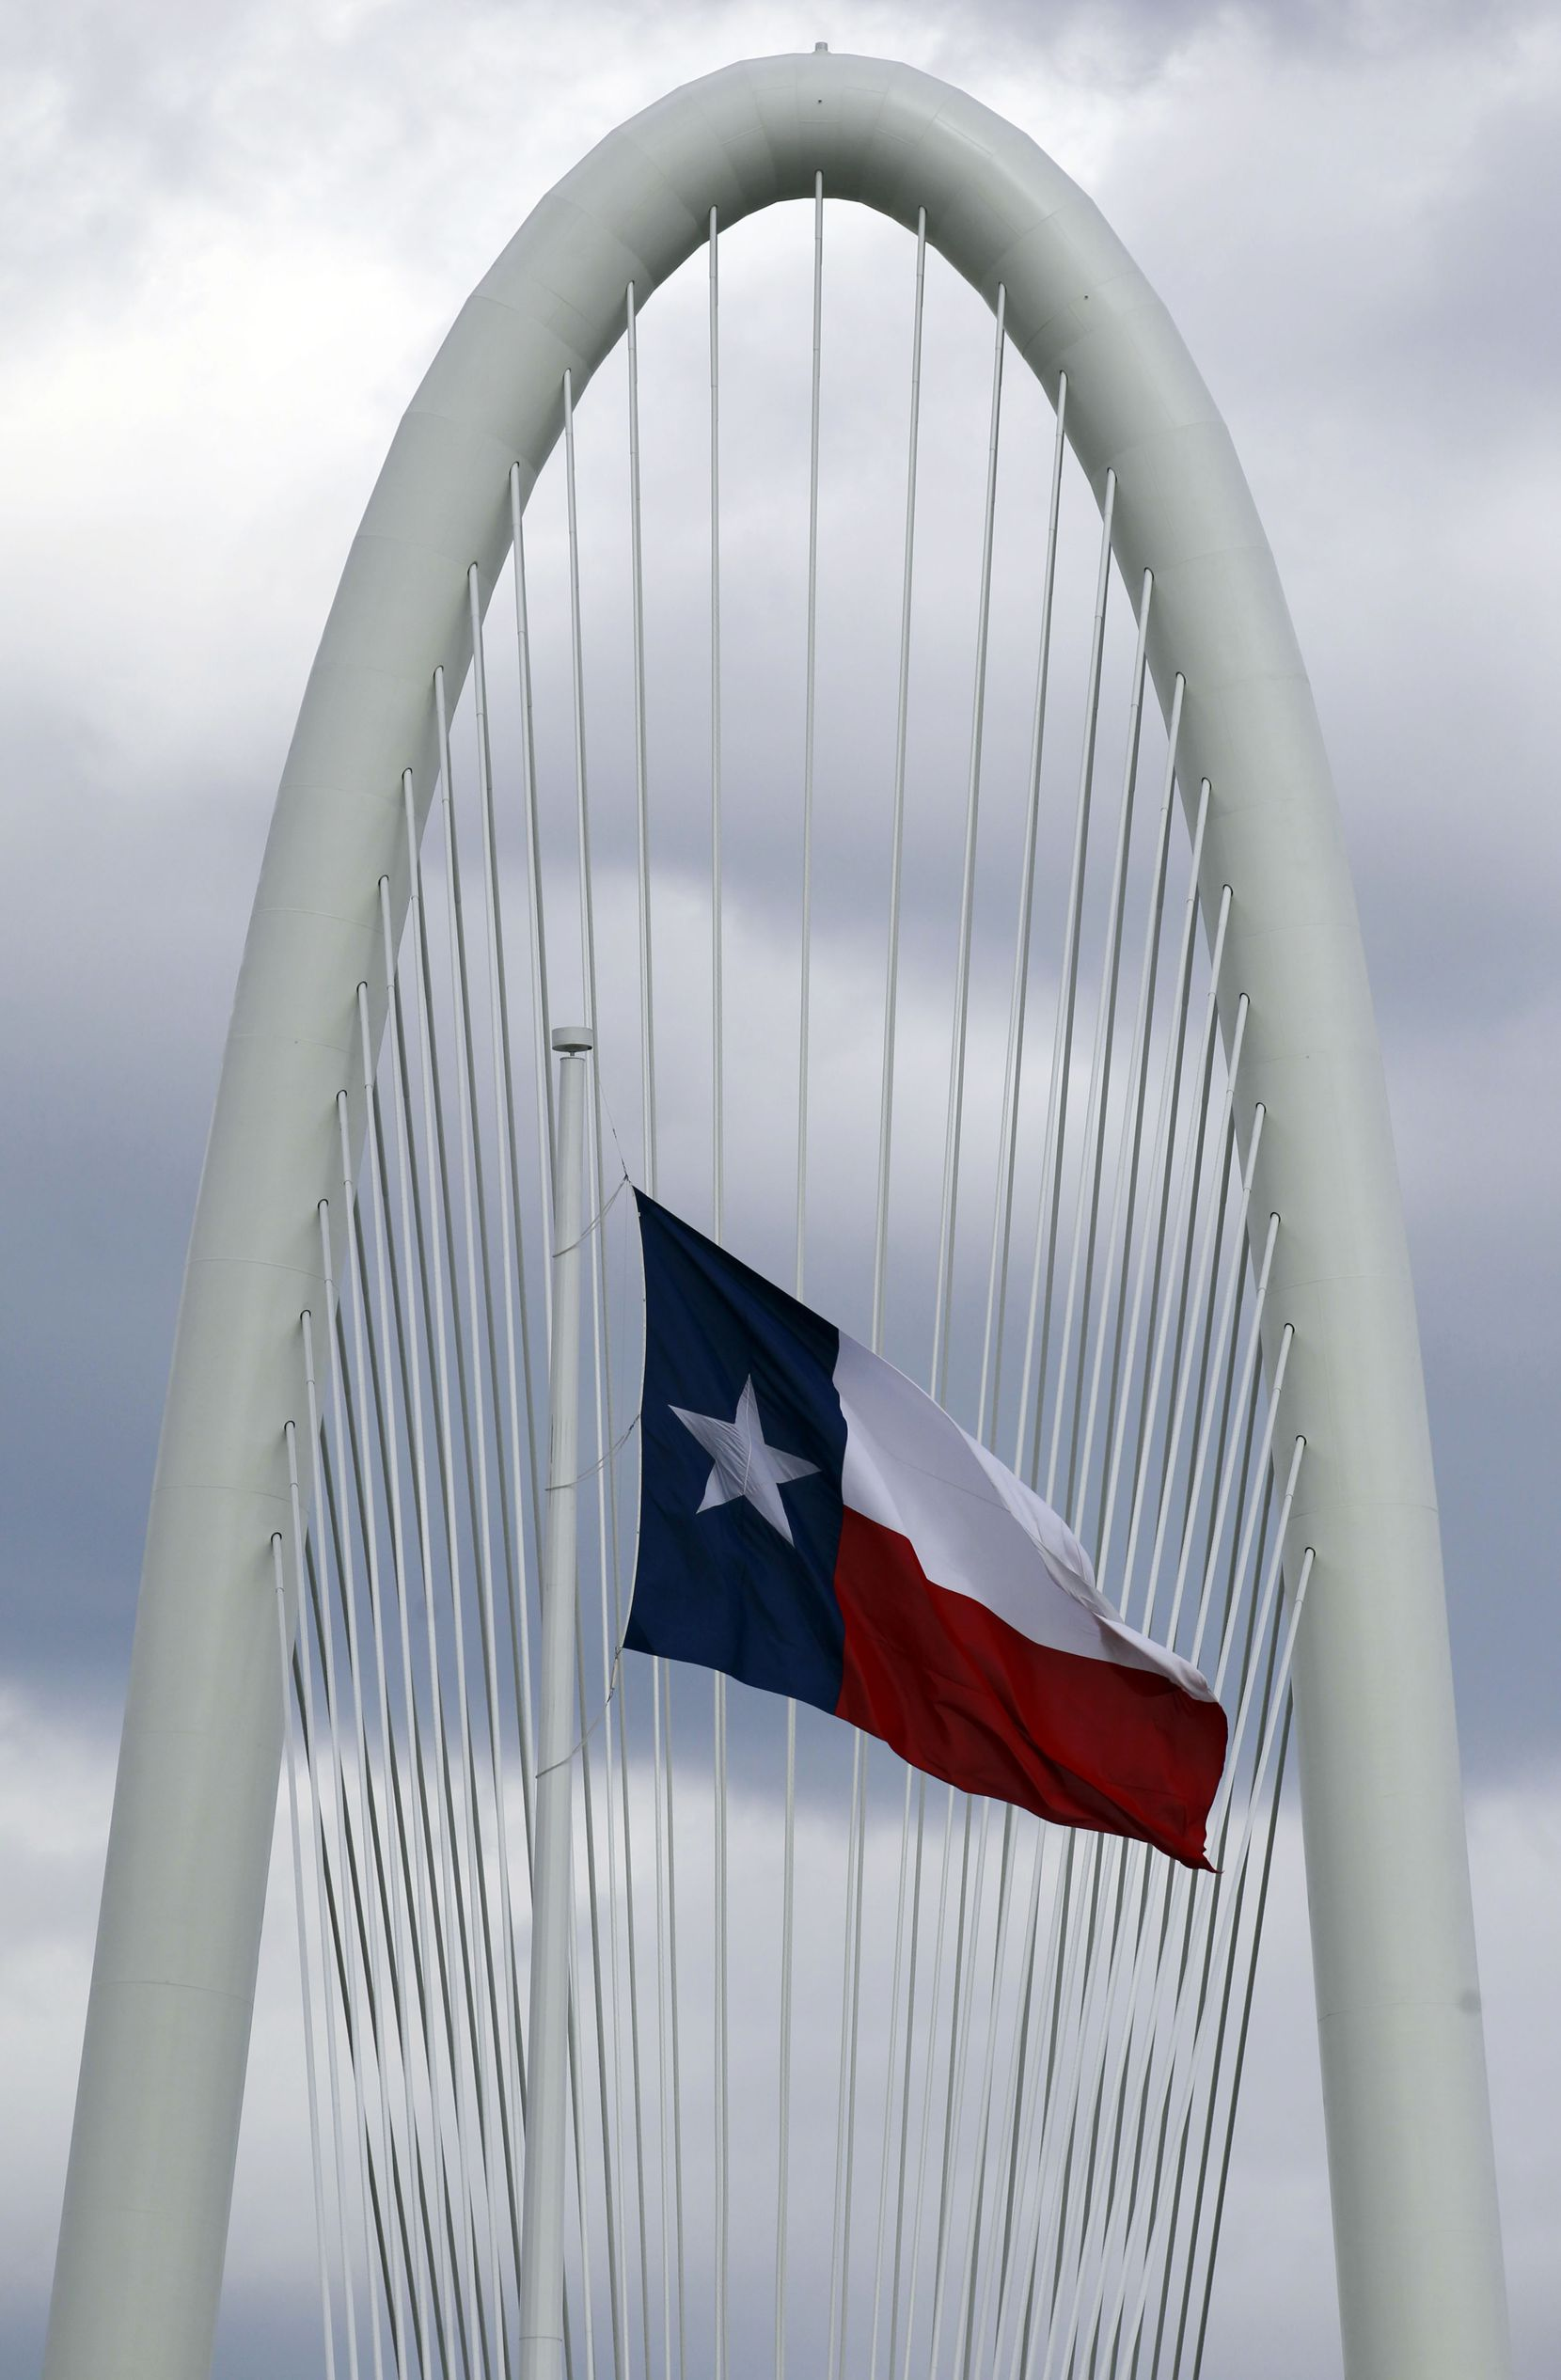 The Texas flag flutters near the Margaret Hunt Hill Bridge.